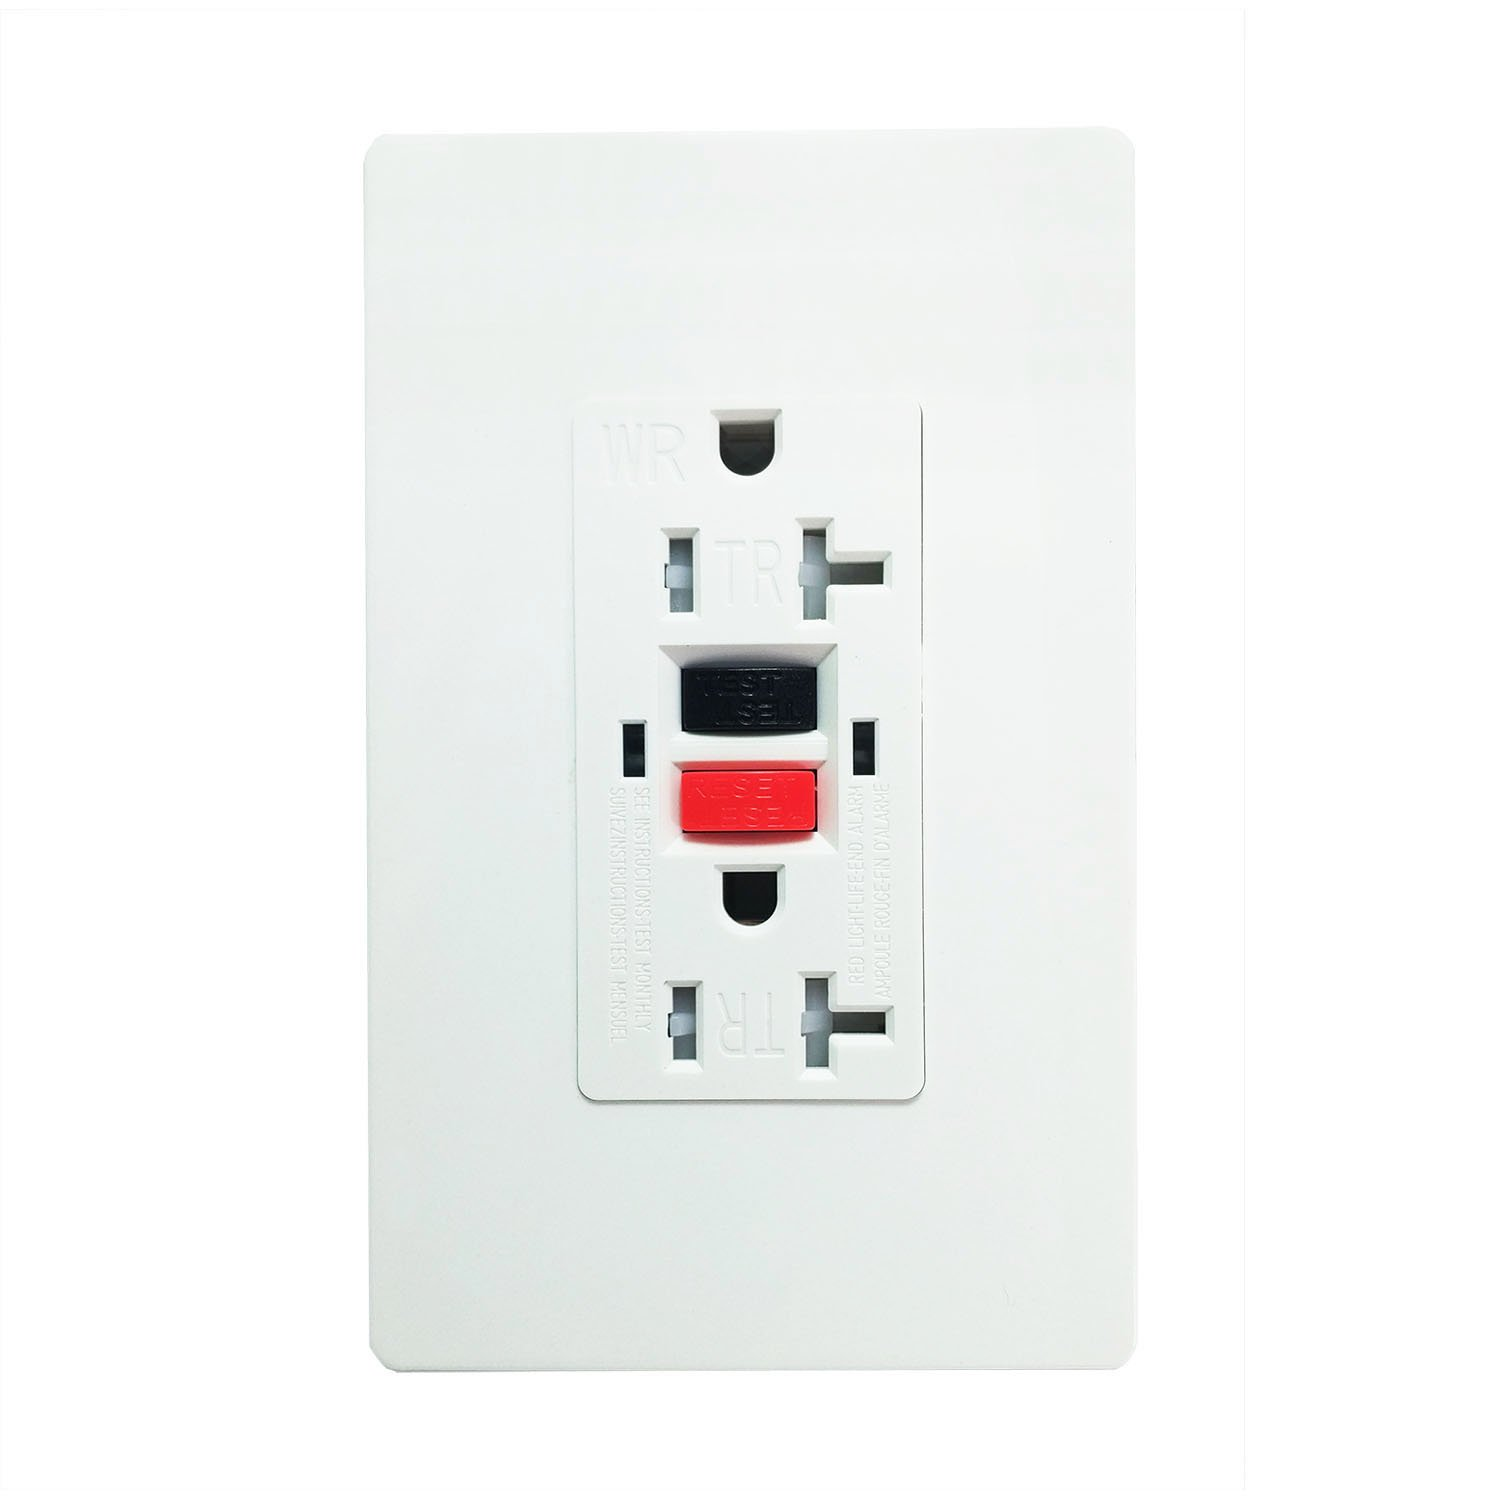 GFCI 20 Amp 125 Voft TR Wall Outlet. SECKATECH Tamper-Resistant | Weather-Resistant | Commercial Grade Standard Wall Socket, Automatically Tests Receptacle with 2 Free Wall plates(UL Listed) 1PACK